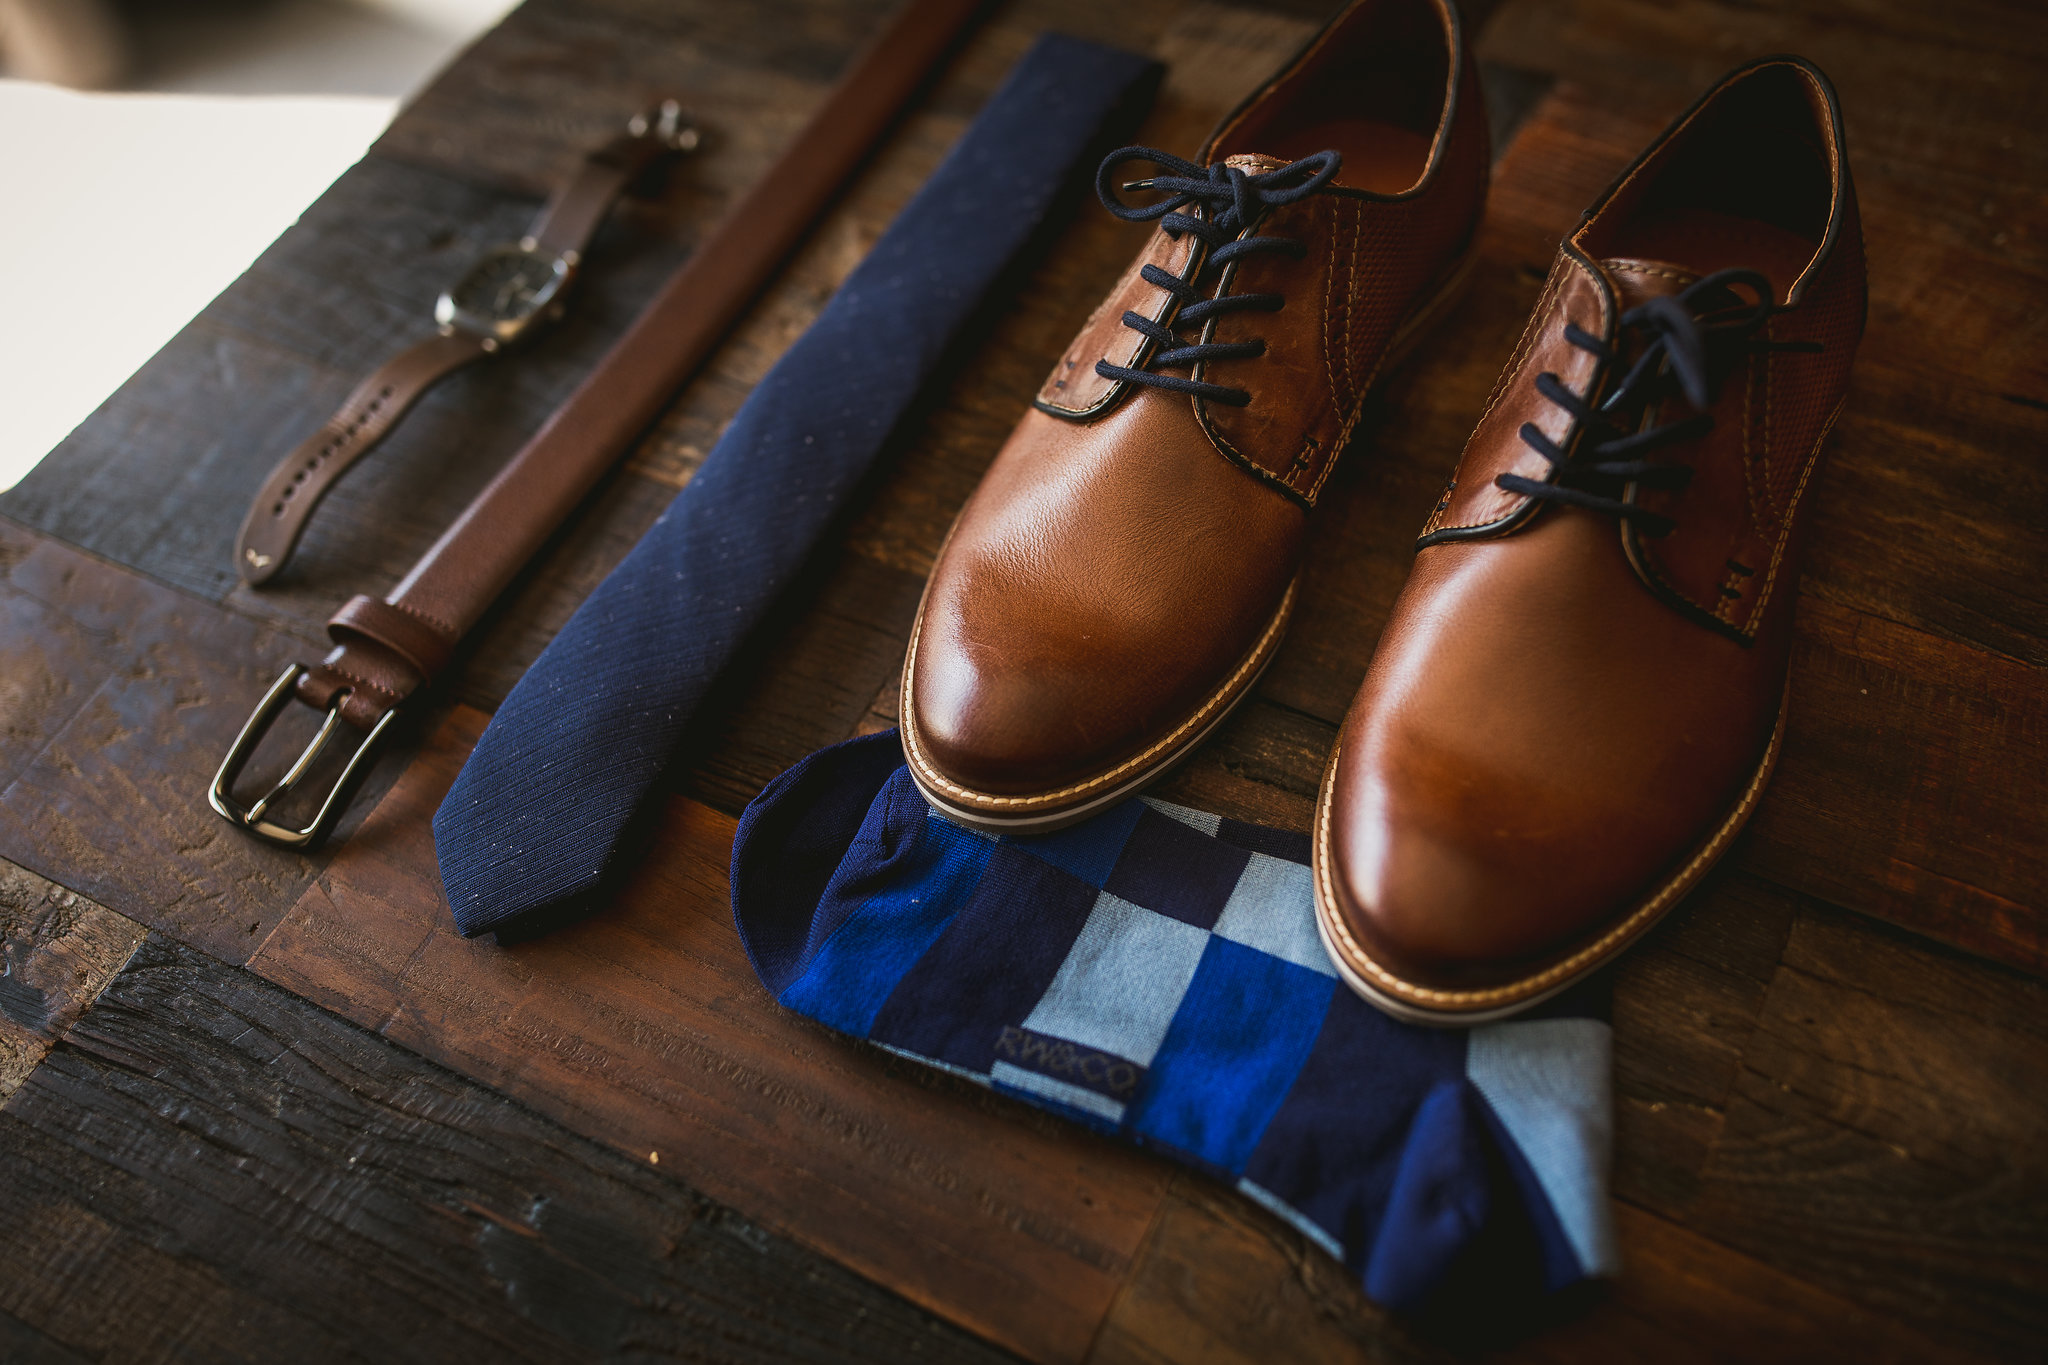 grooms wedding details with blue socks